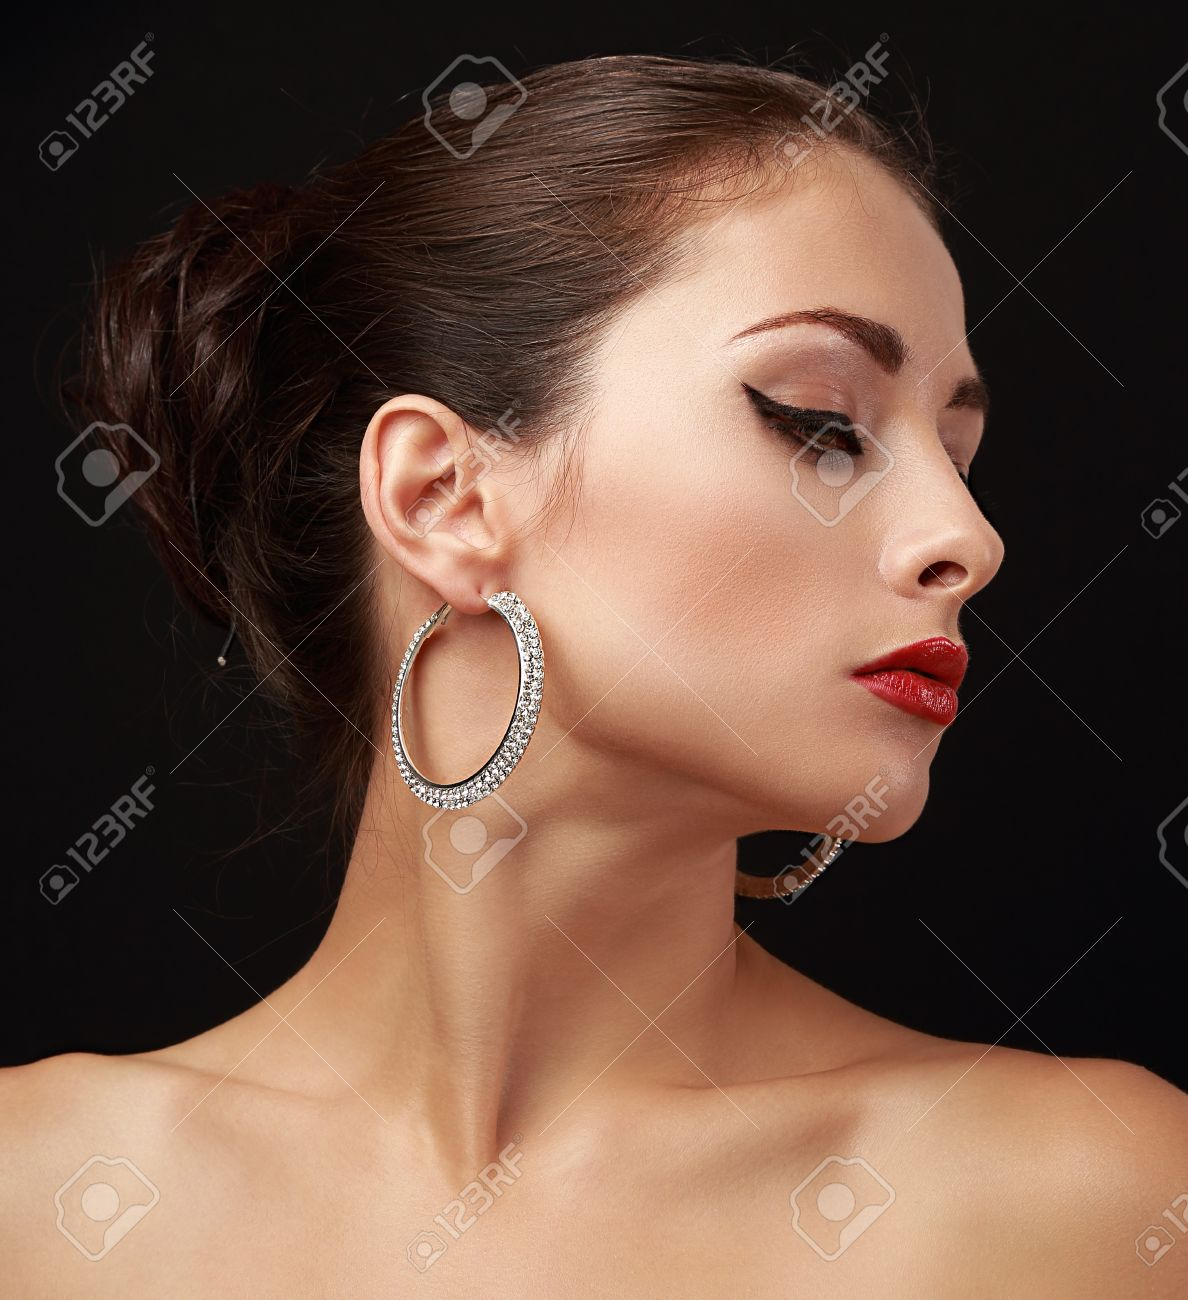 woman photo wearing earrings free and photoshoot rings pose more